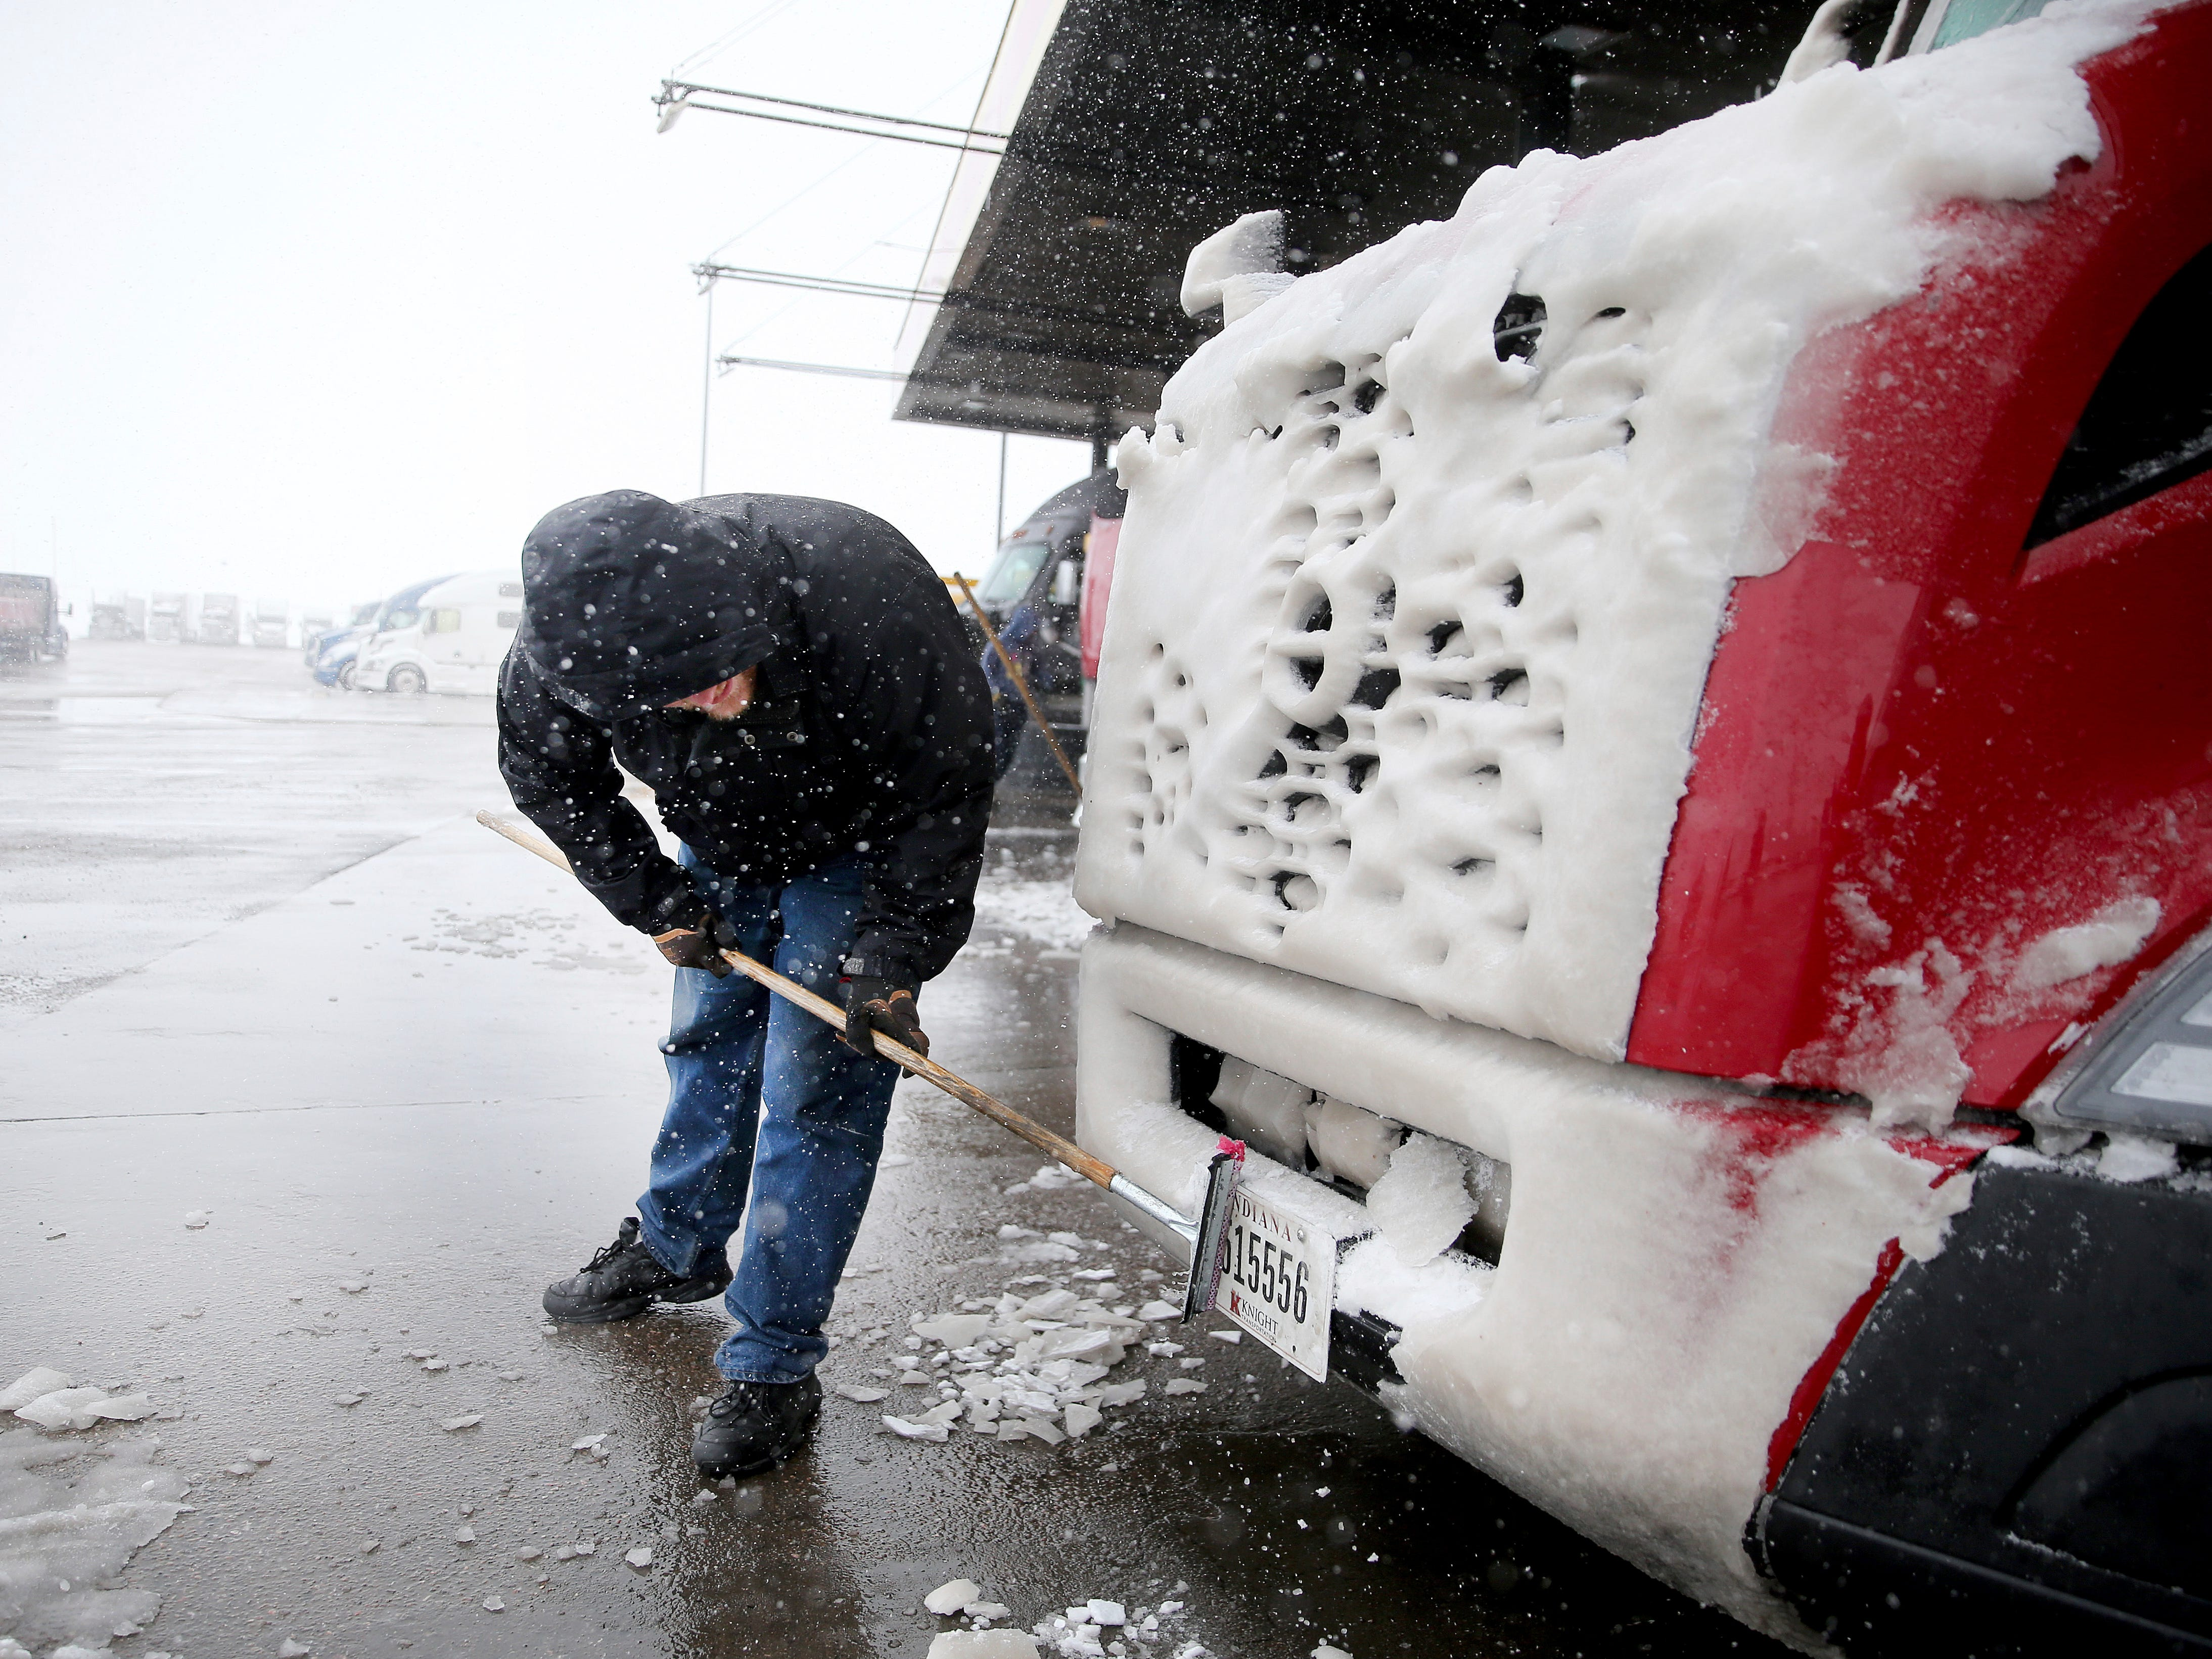 Alan Brown of Colorado Springs, Colo., attempts to clear ice from his truck's license plate as he prepares to continue the trek to Billings, Mont., while passing through Love's Travel Stop during a blizzard warning hitting southeast Wyoming Wednesday, April 10, 2019, in Cheyenne. People in Colorado and Wyoming were urged to get home early Wednesday and stay there before snow and wind from a powerful spring storm make travel all but impossible.